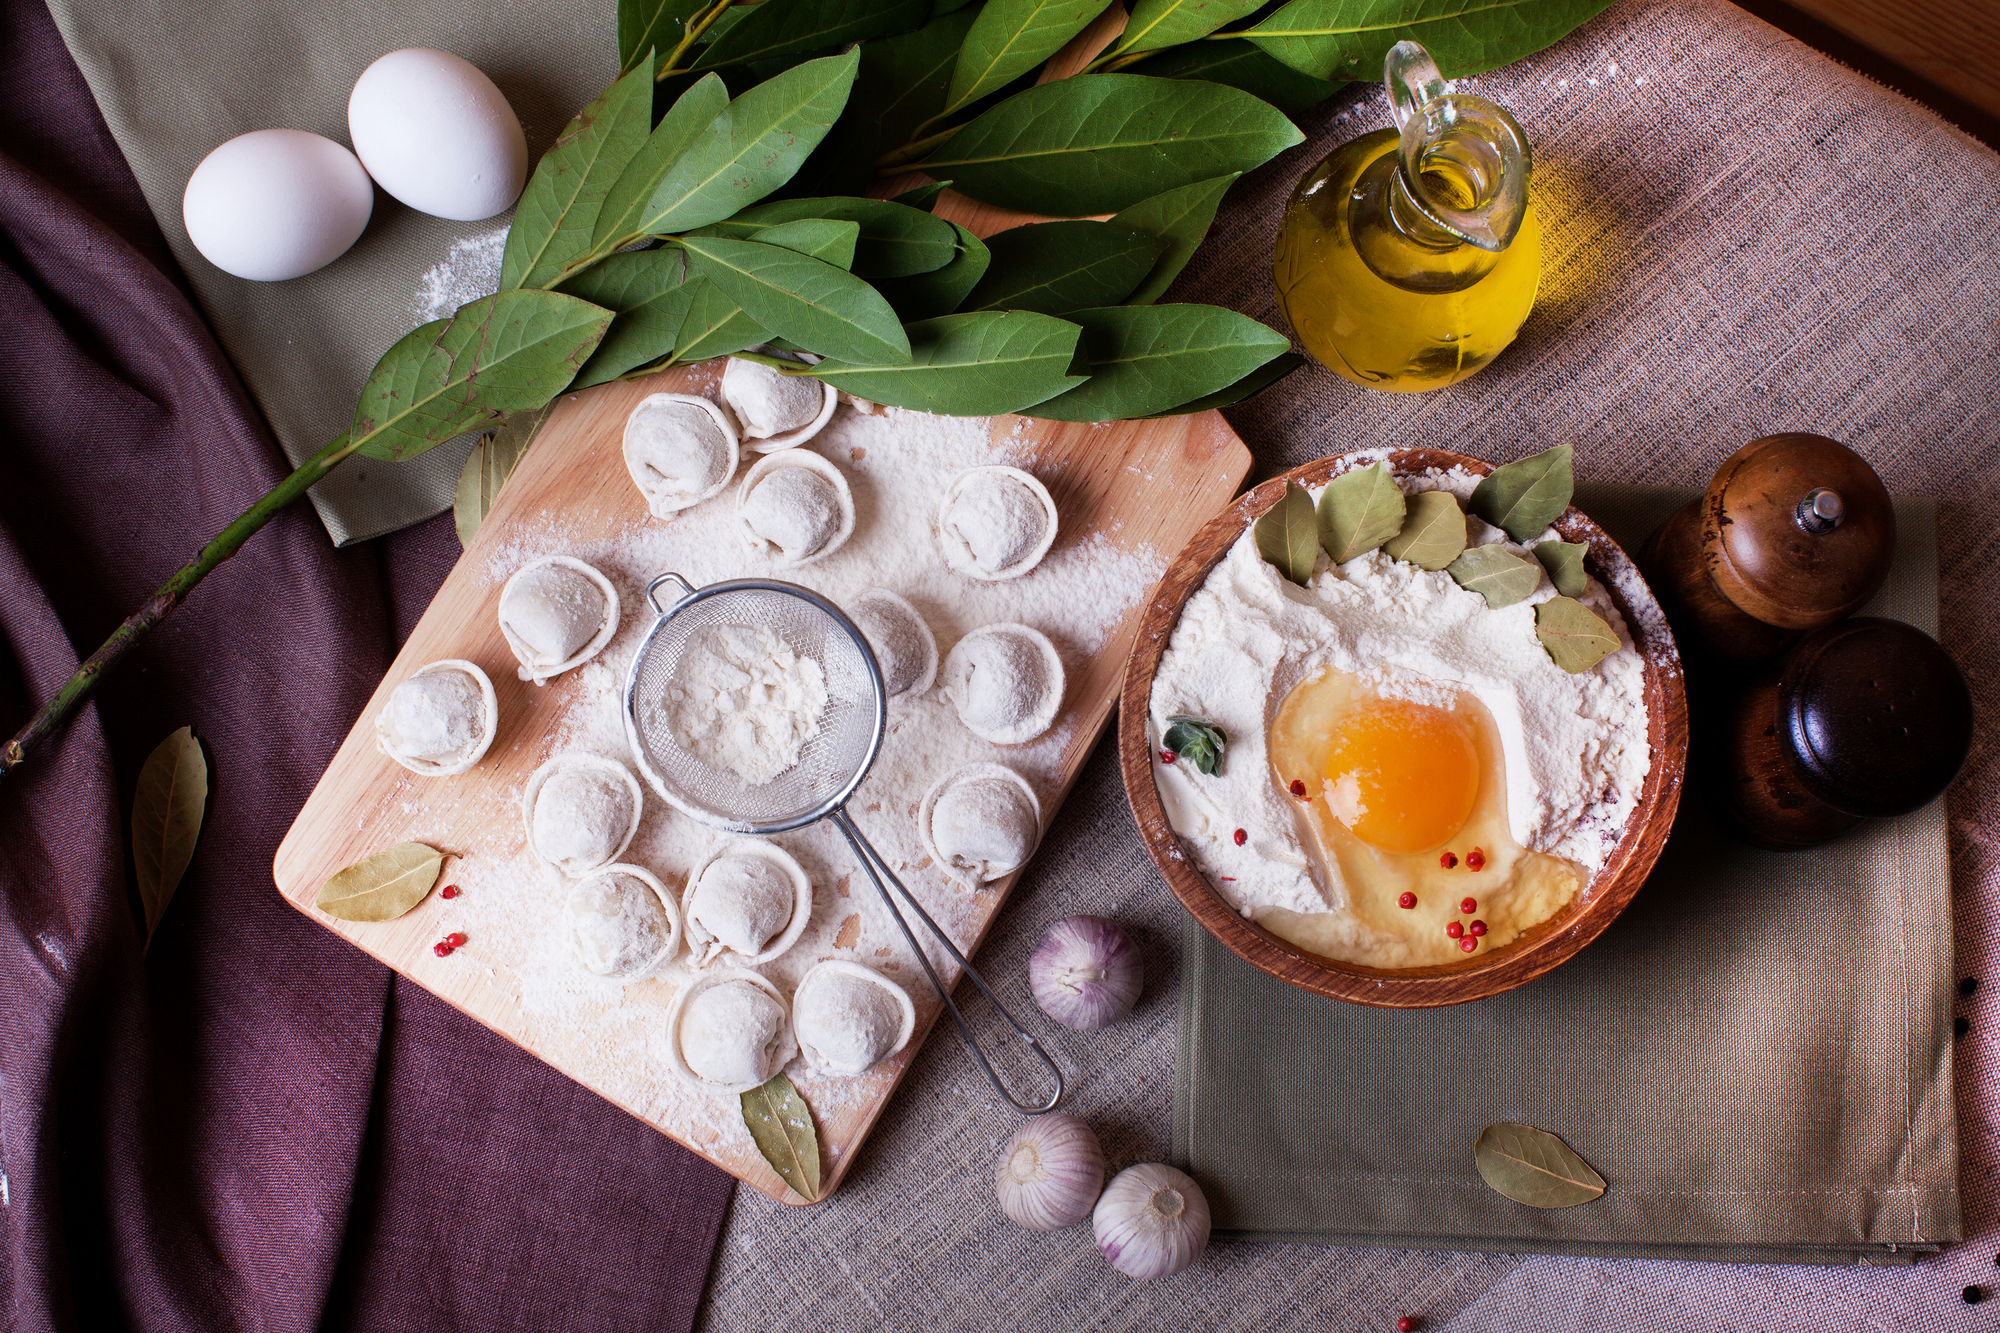 Table covered with ingredients and ready-made dumplings